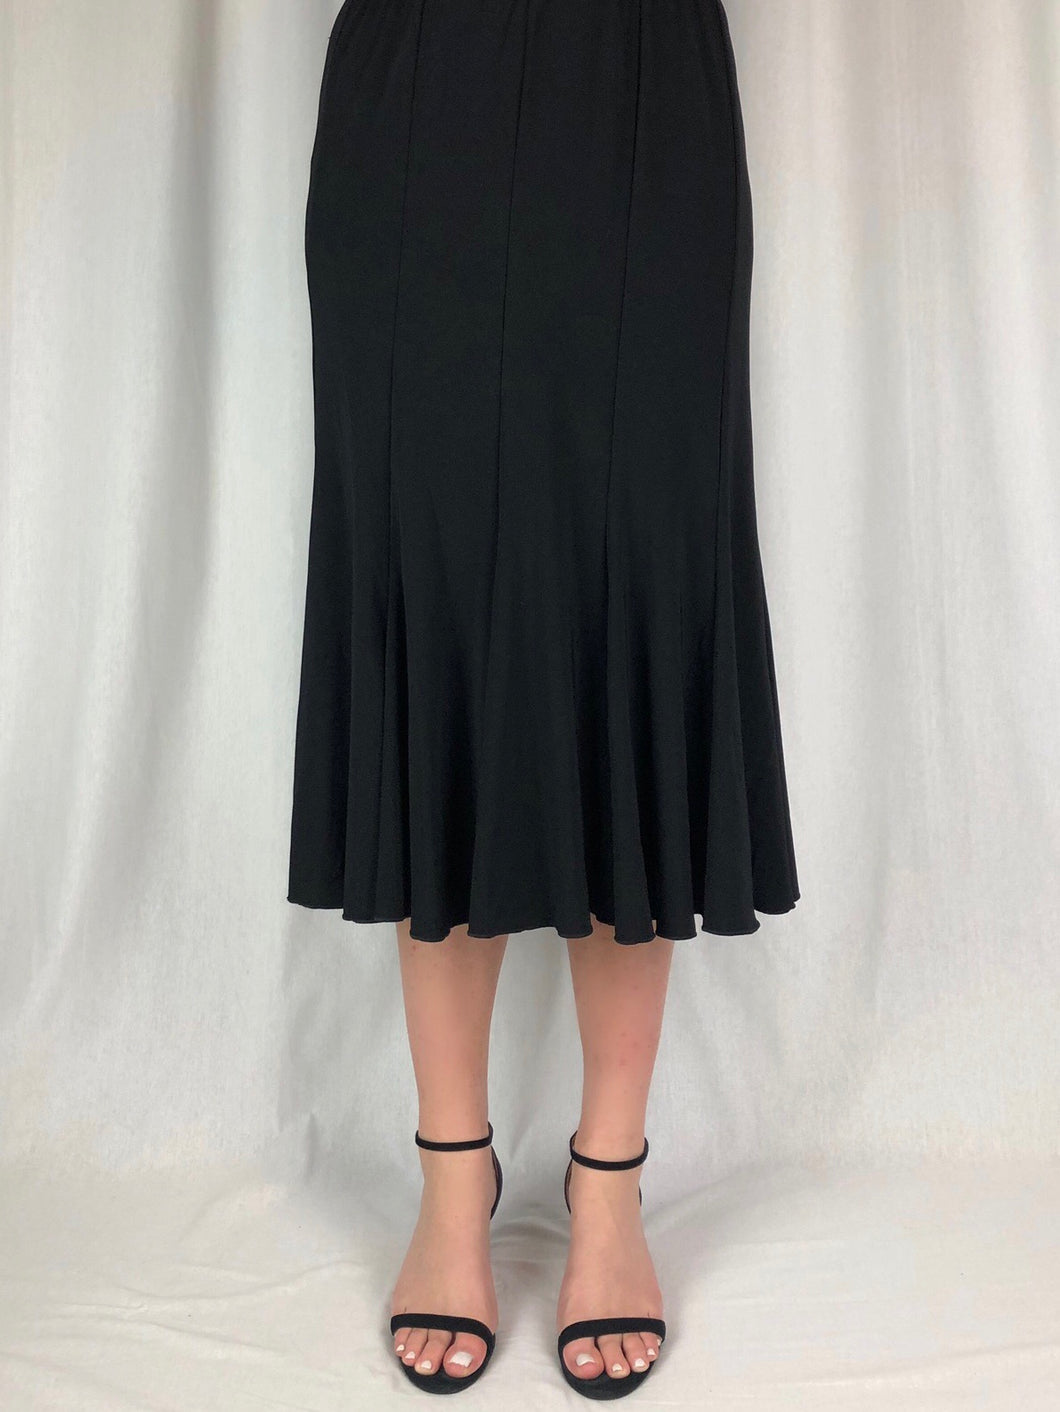 Our 12 Gore Skirt with an elastic waistband is made from a slinky jersey comprising Polyester/Spandex allowing for beautiful movement. Ideal for special occasions, it's also a great piece to throw in your suitcase when travelling as it's fully washable and drip dries with no ironing required.